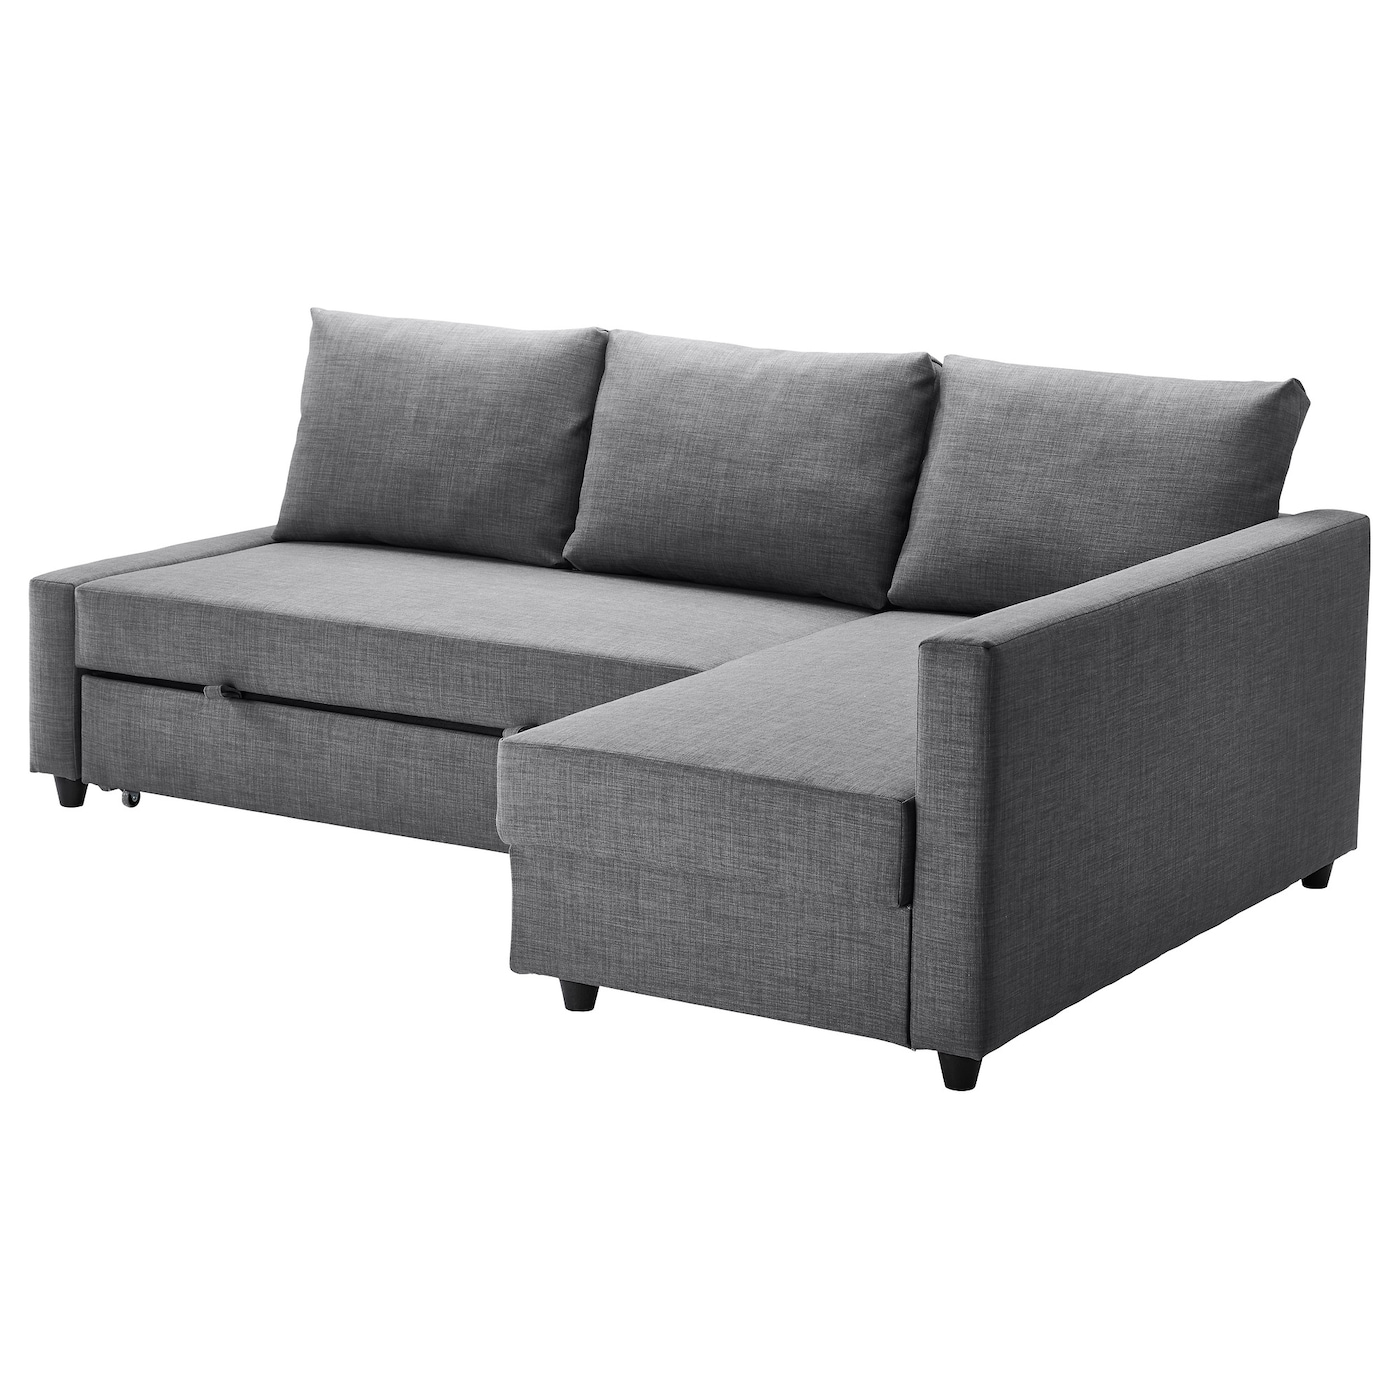 Ikea FRIHETEN Corner sofa-bed with storage, Skiftebo dark gray